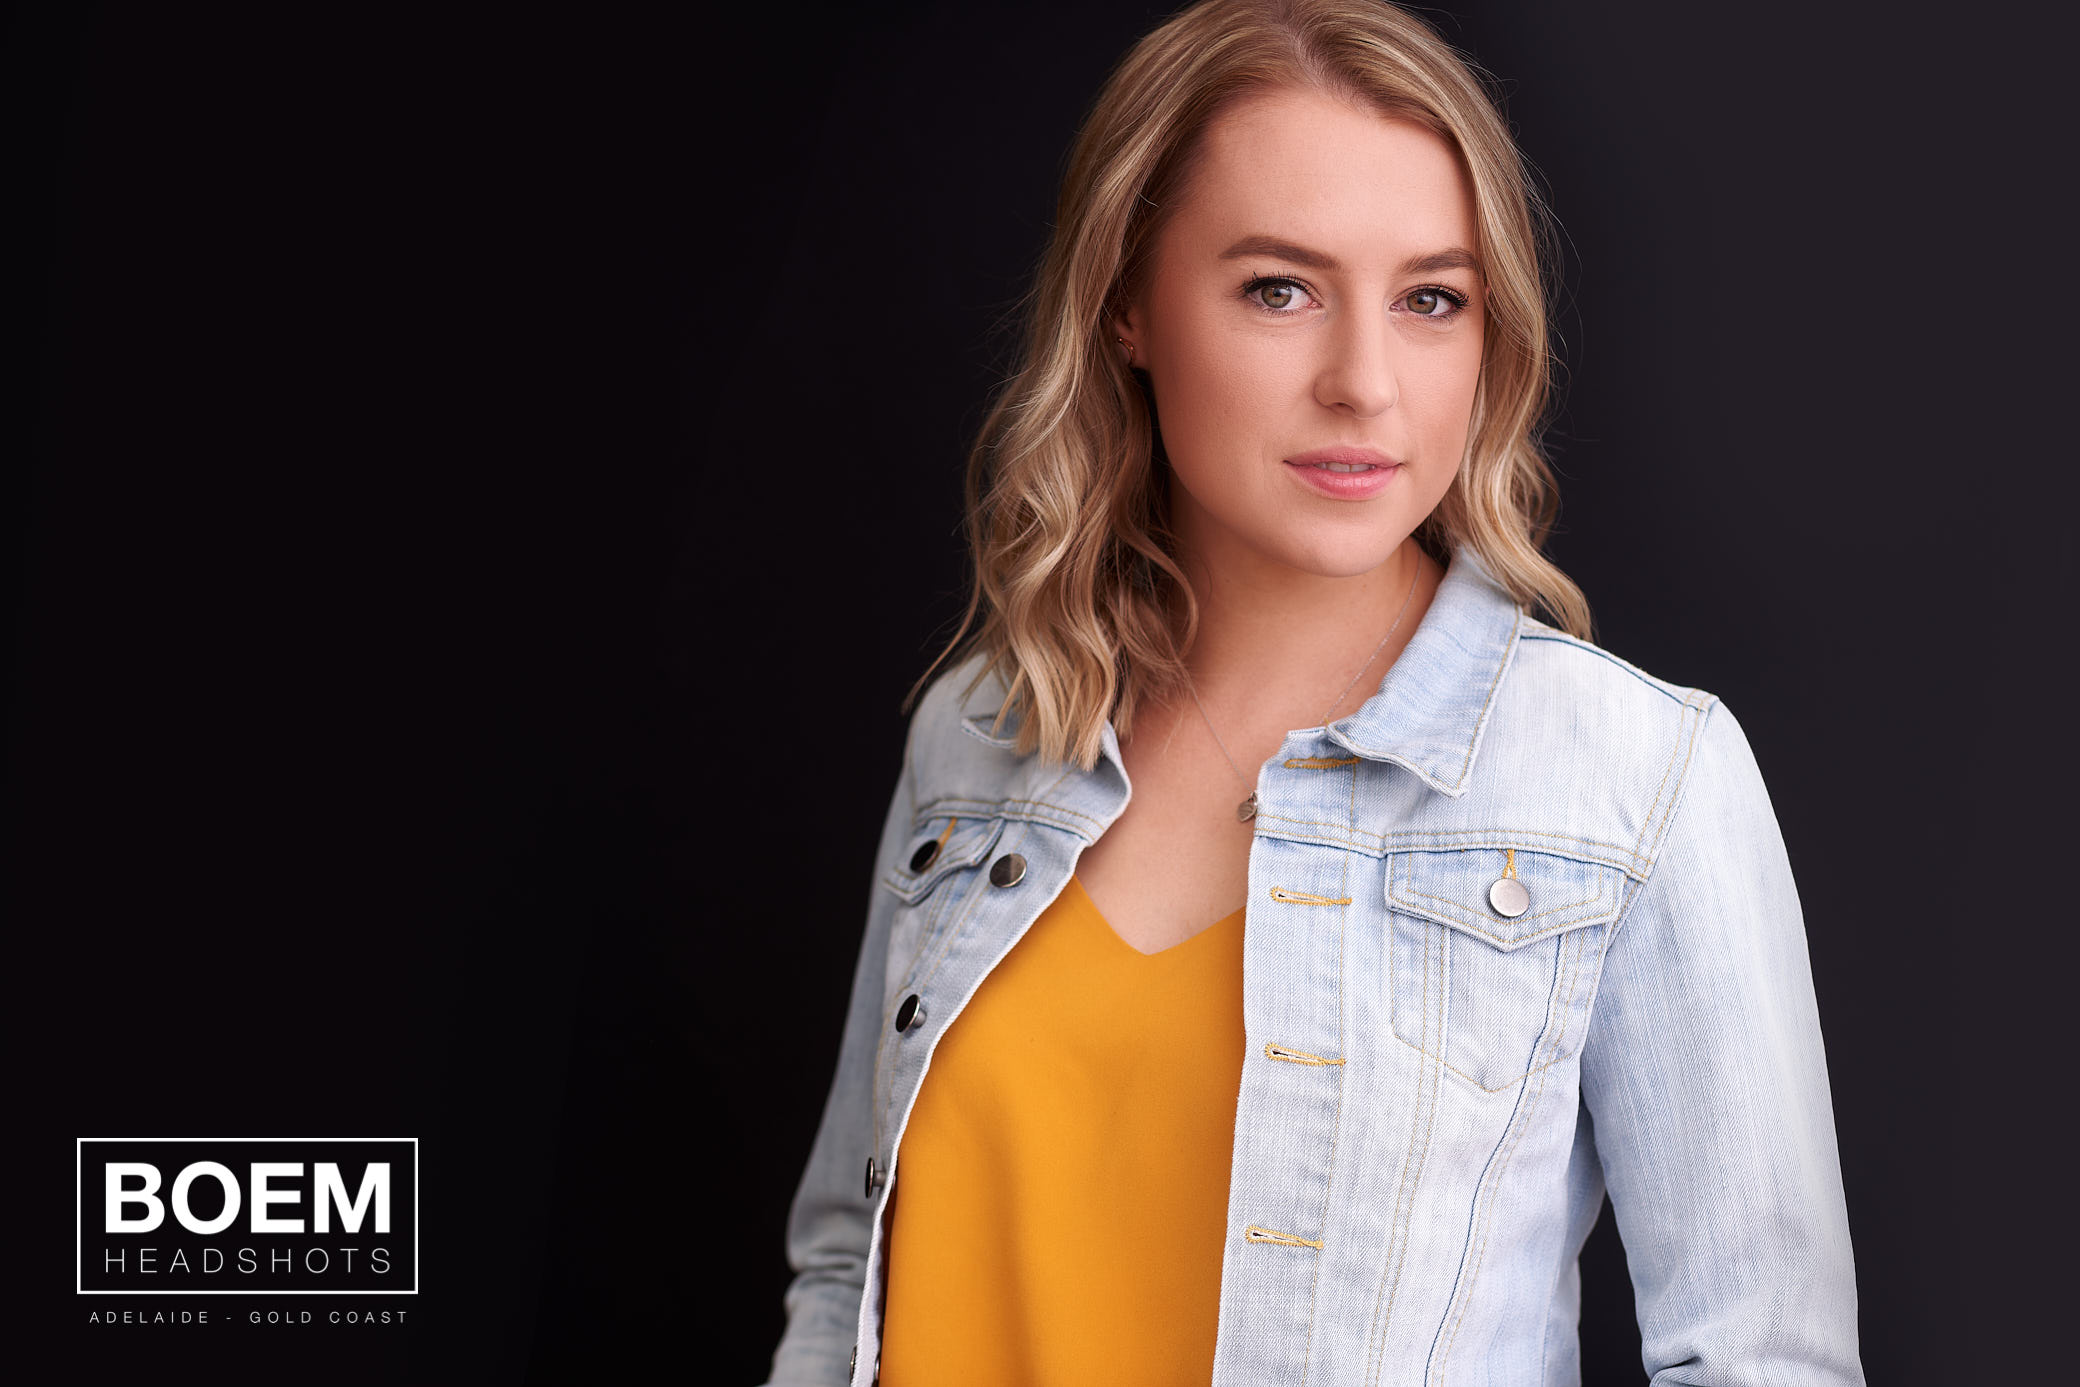 Maya! Such a great shoot with her in the studio tody! She's a teacher and acteess getting into musical theater at the moment and needed some new headshots to help her with auditions and her career!